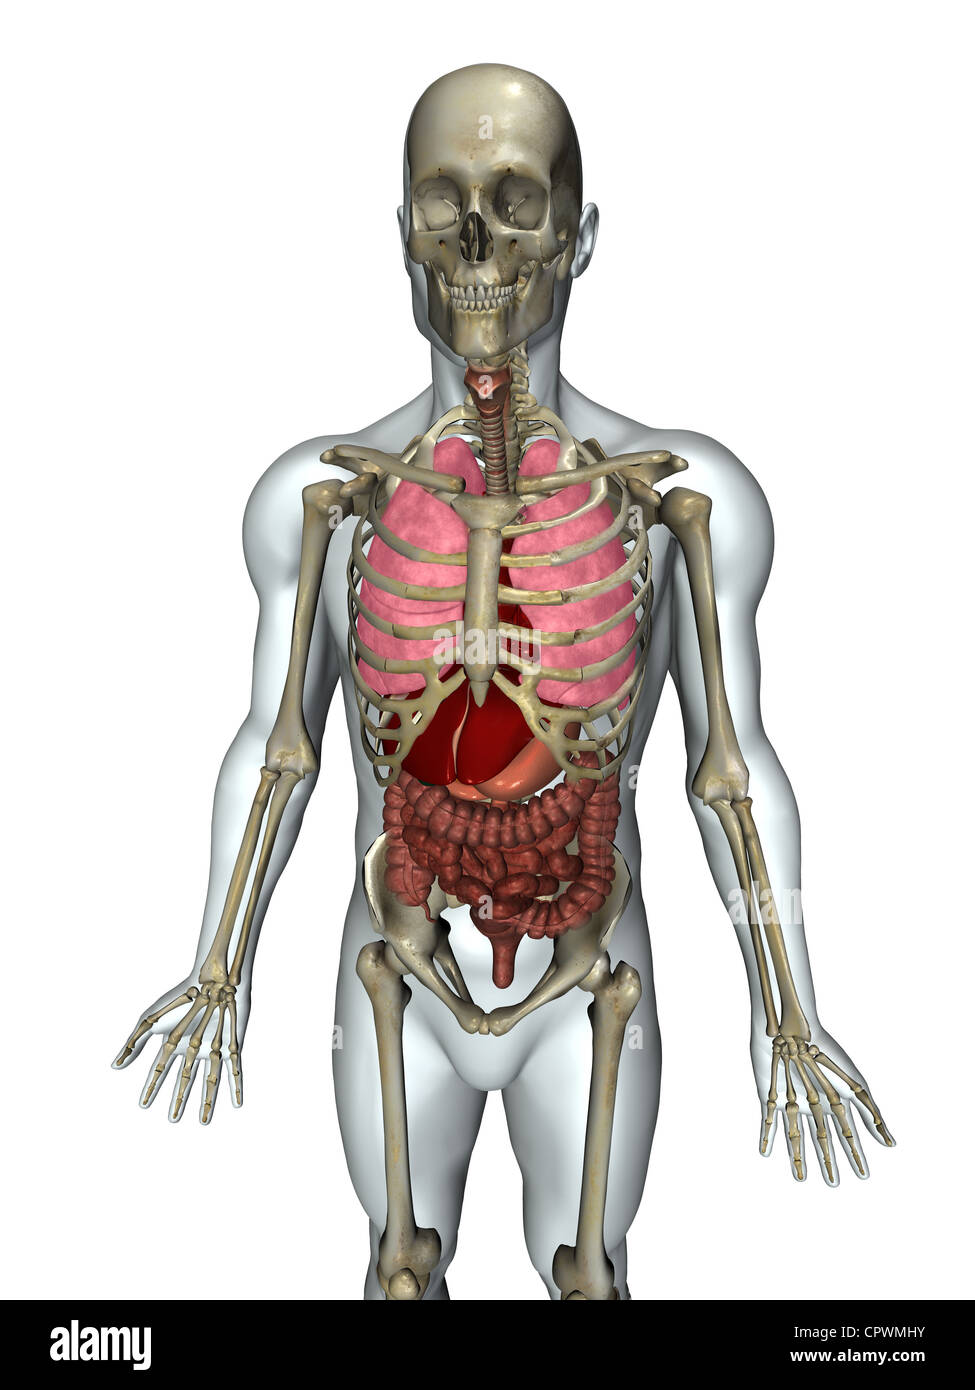 Anatomical illustration of the human body showing the major organ ...